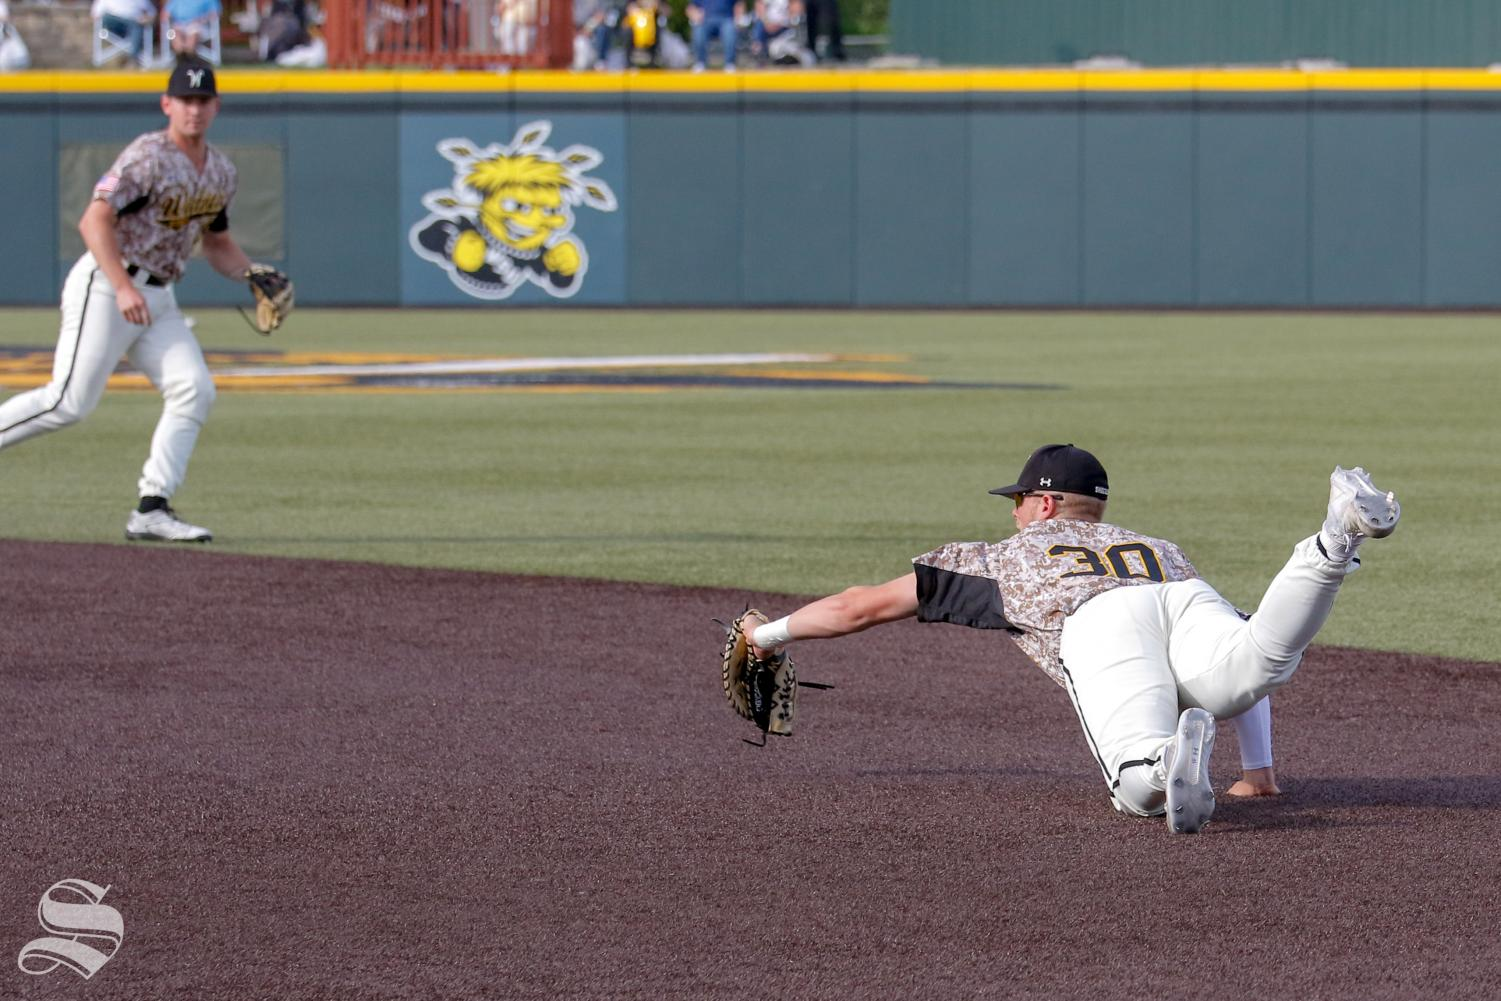 Wichita State's Greyson Jenista makes a diving catch at first during their game against ORU on May 8, 2018 at Eck Stadium.